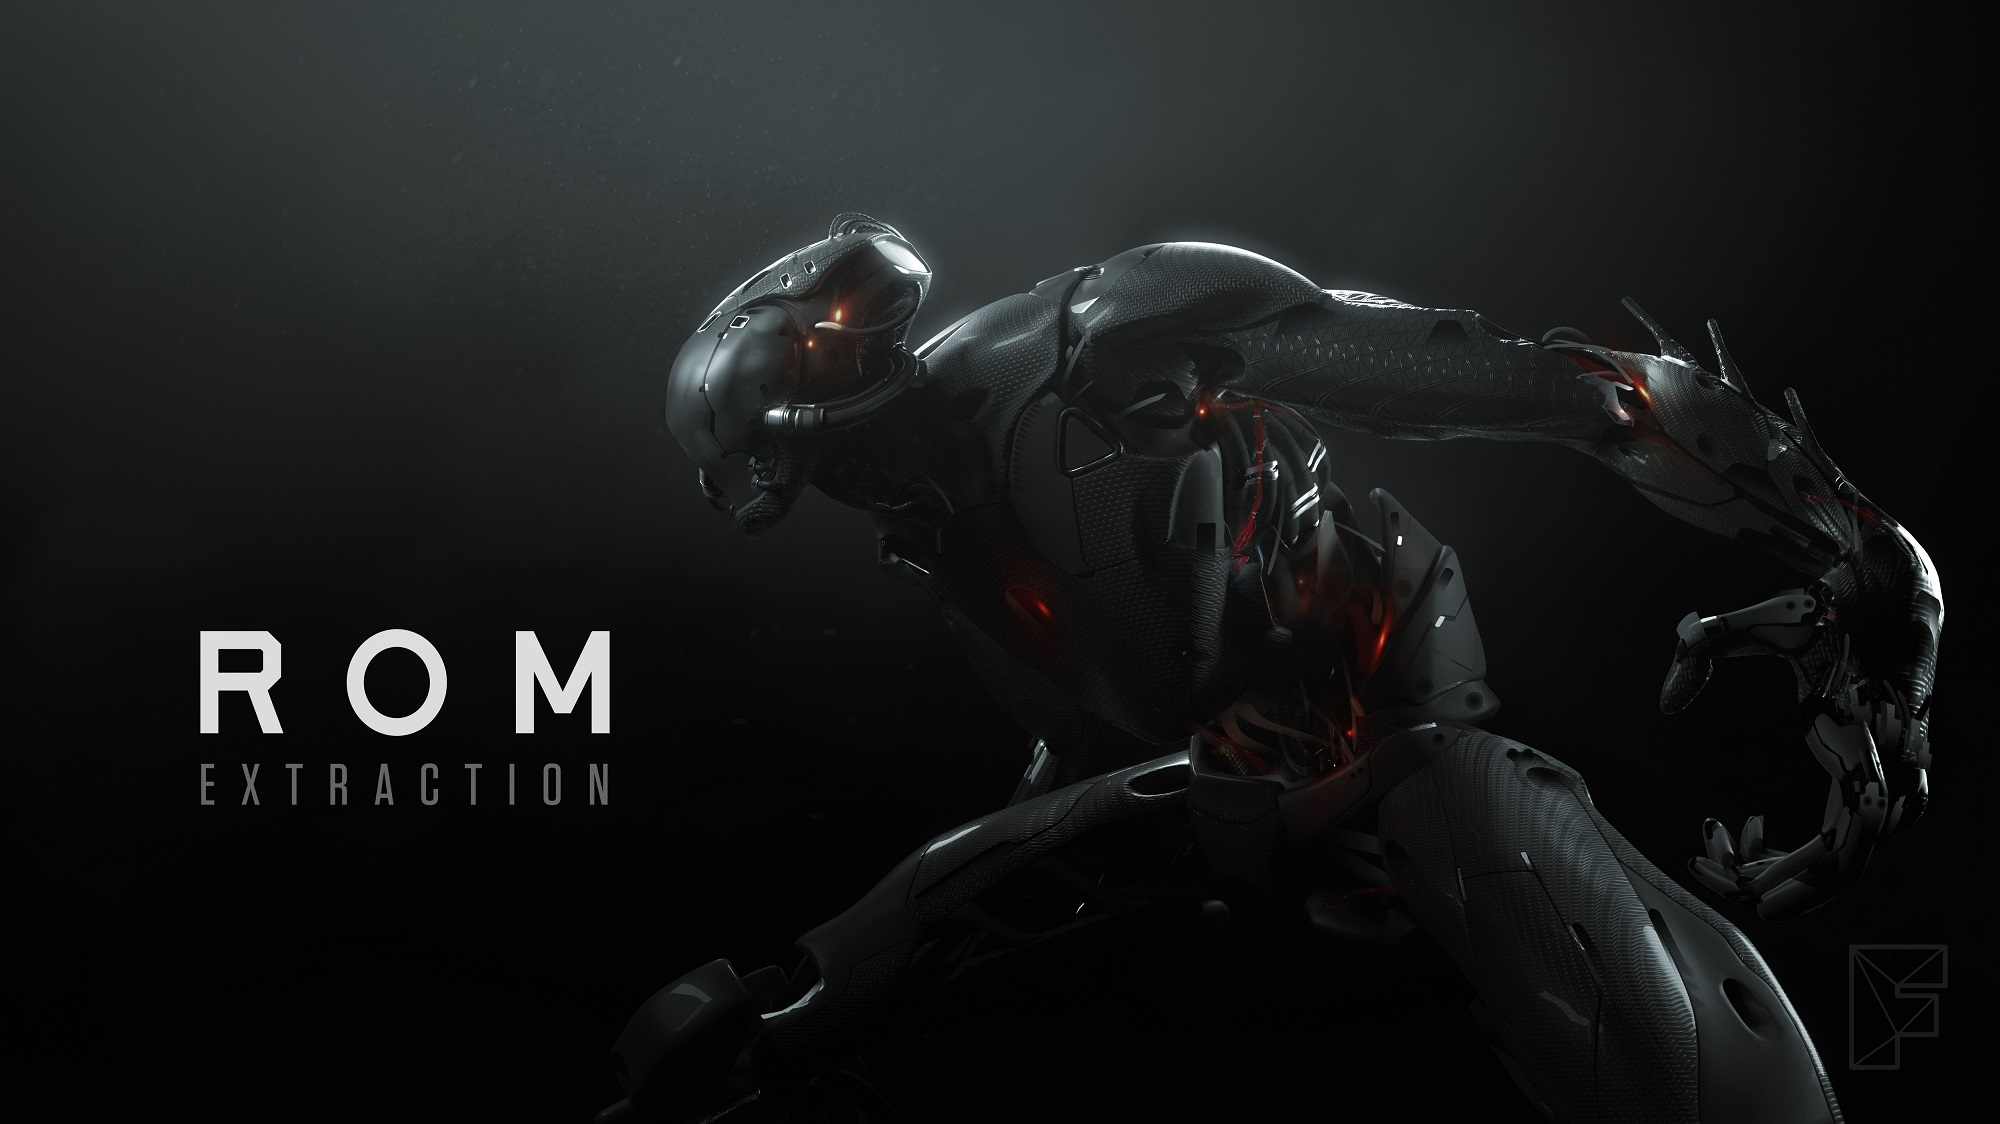 rom-extraction-featured-image